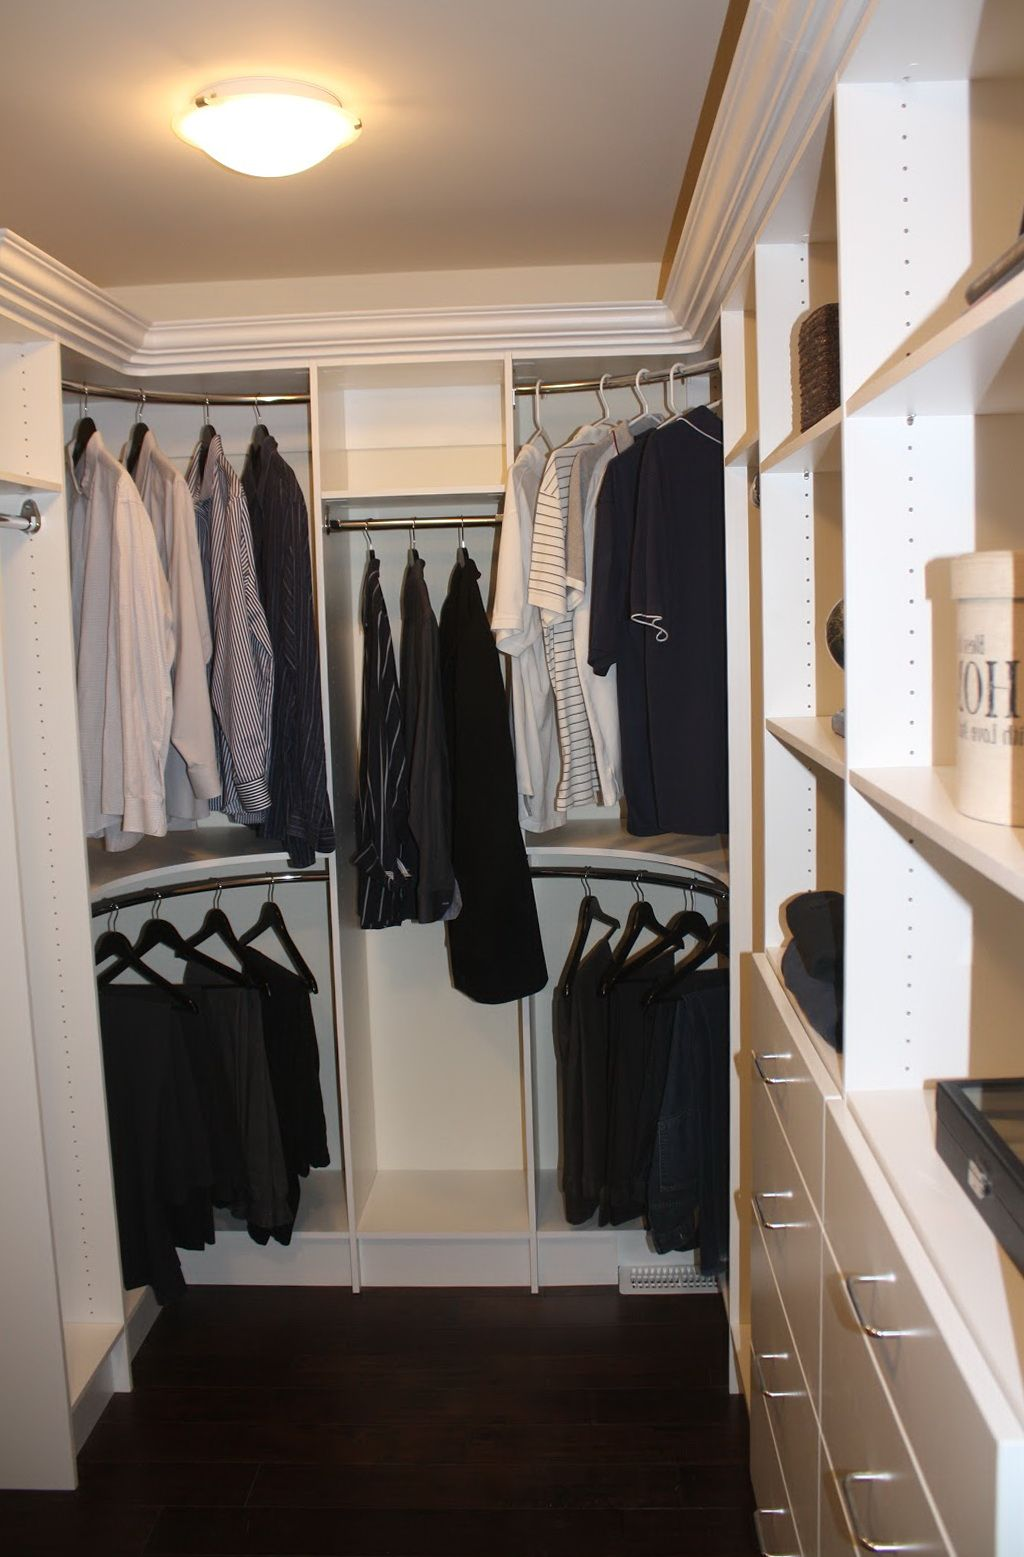 Curved Closet Rod Adorable Curved Closet Rods Corners  Office Closets And Organizational Design Ideas